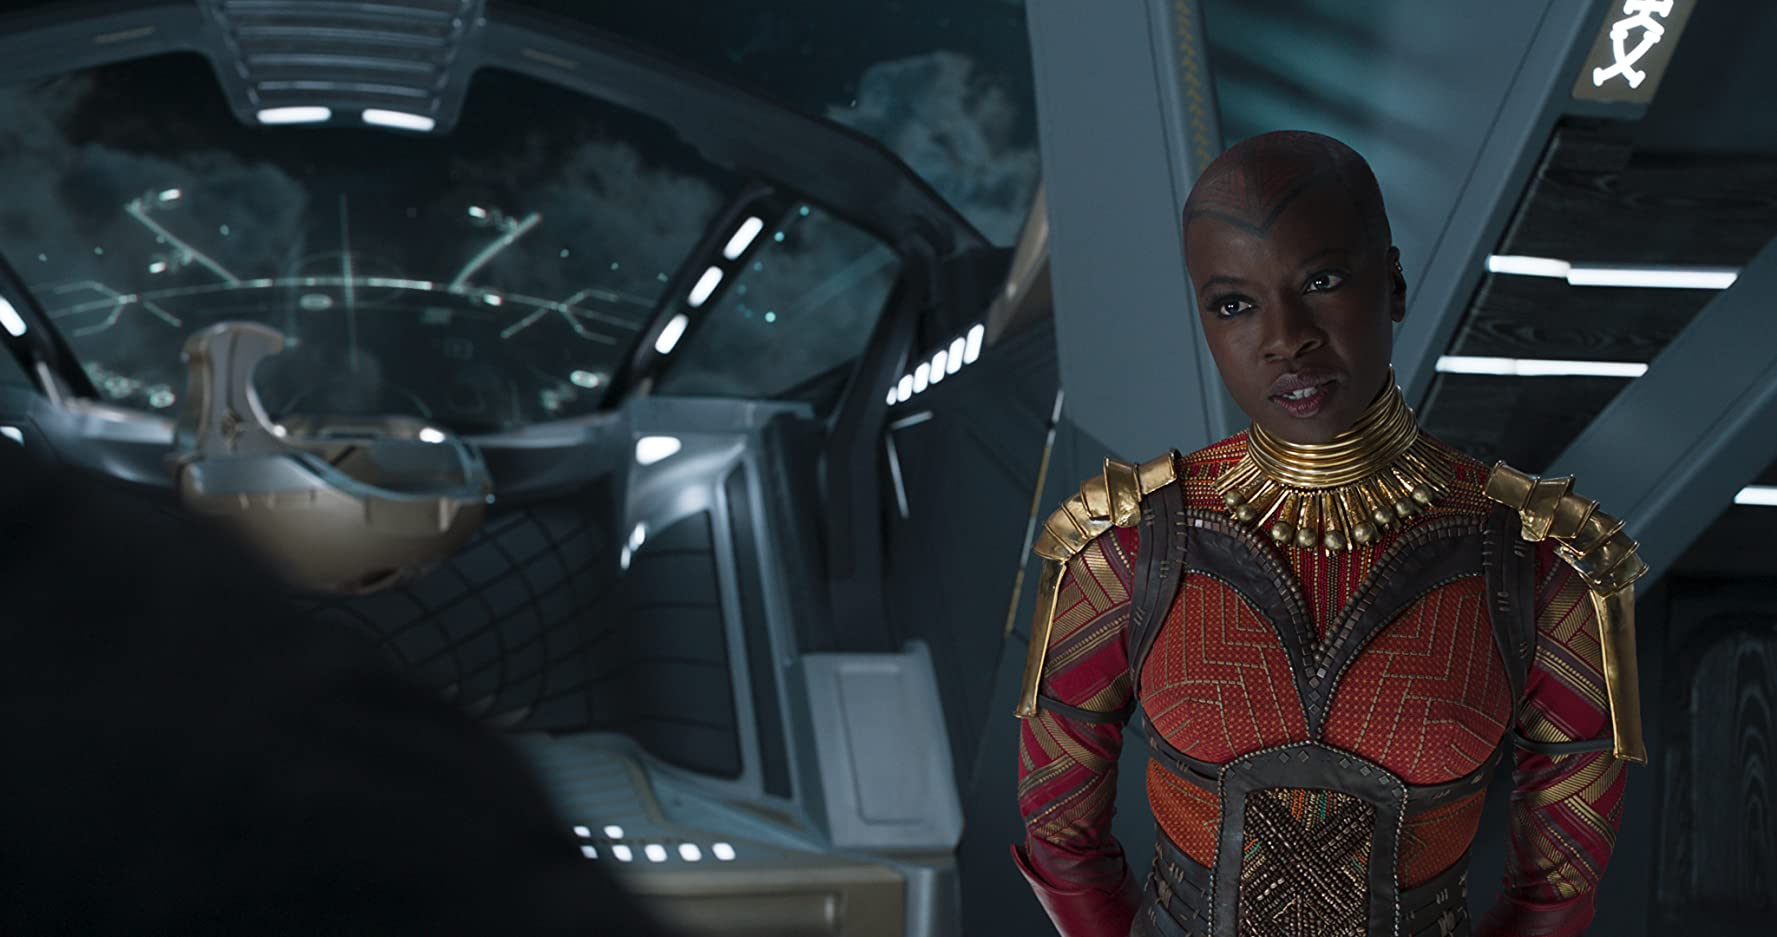 The remarkable femininity of Okoye